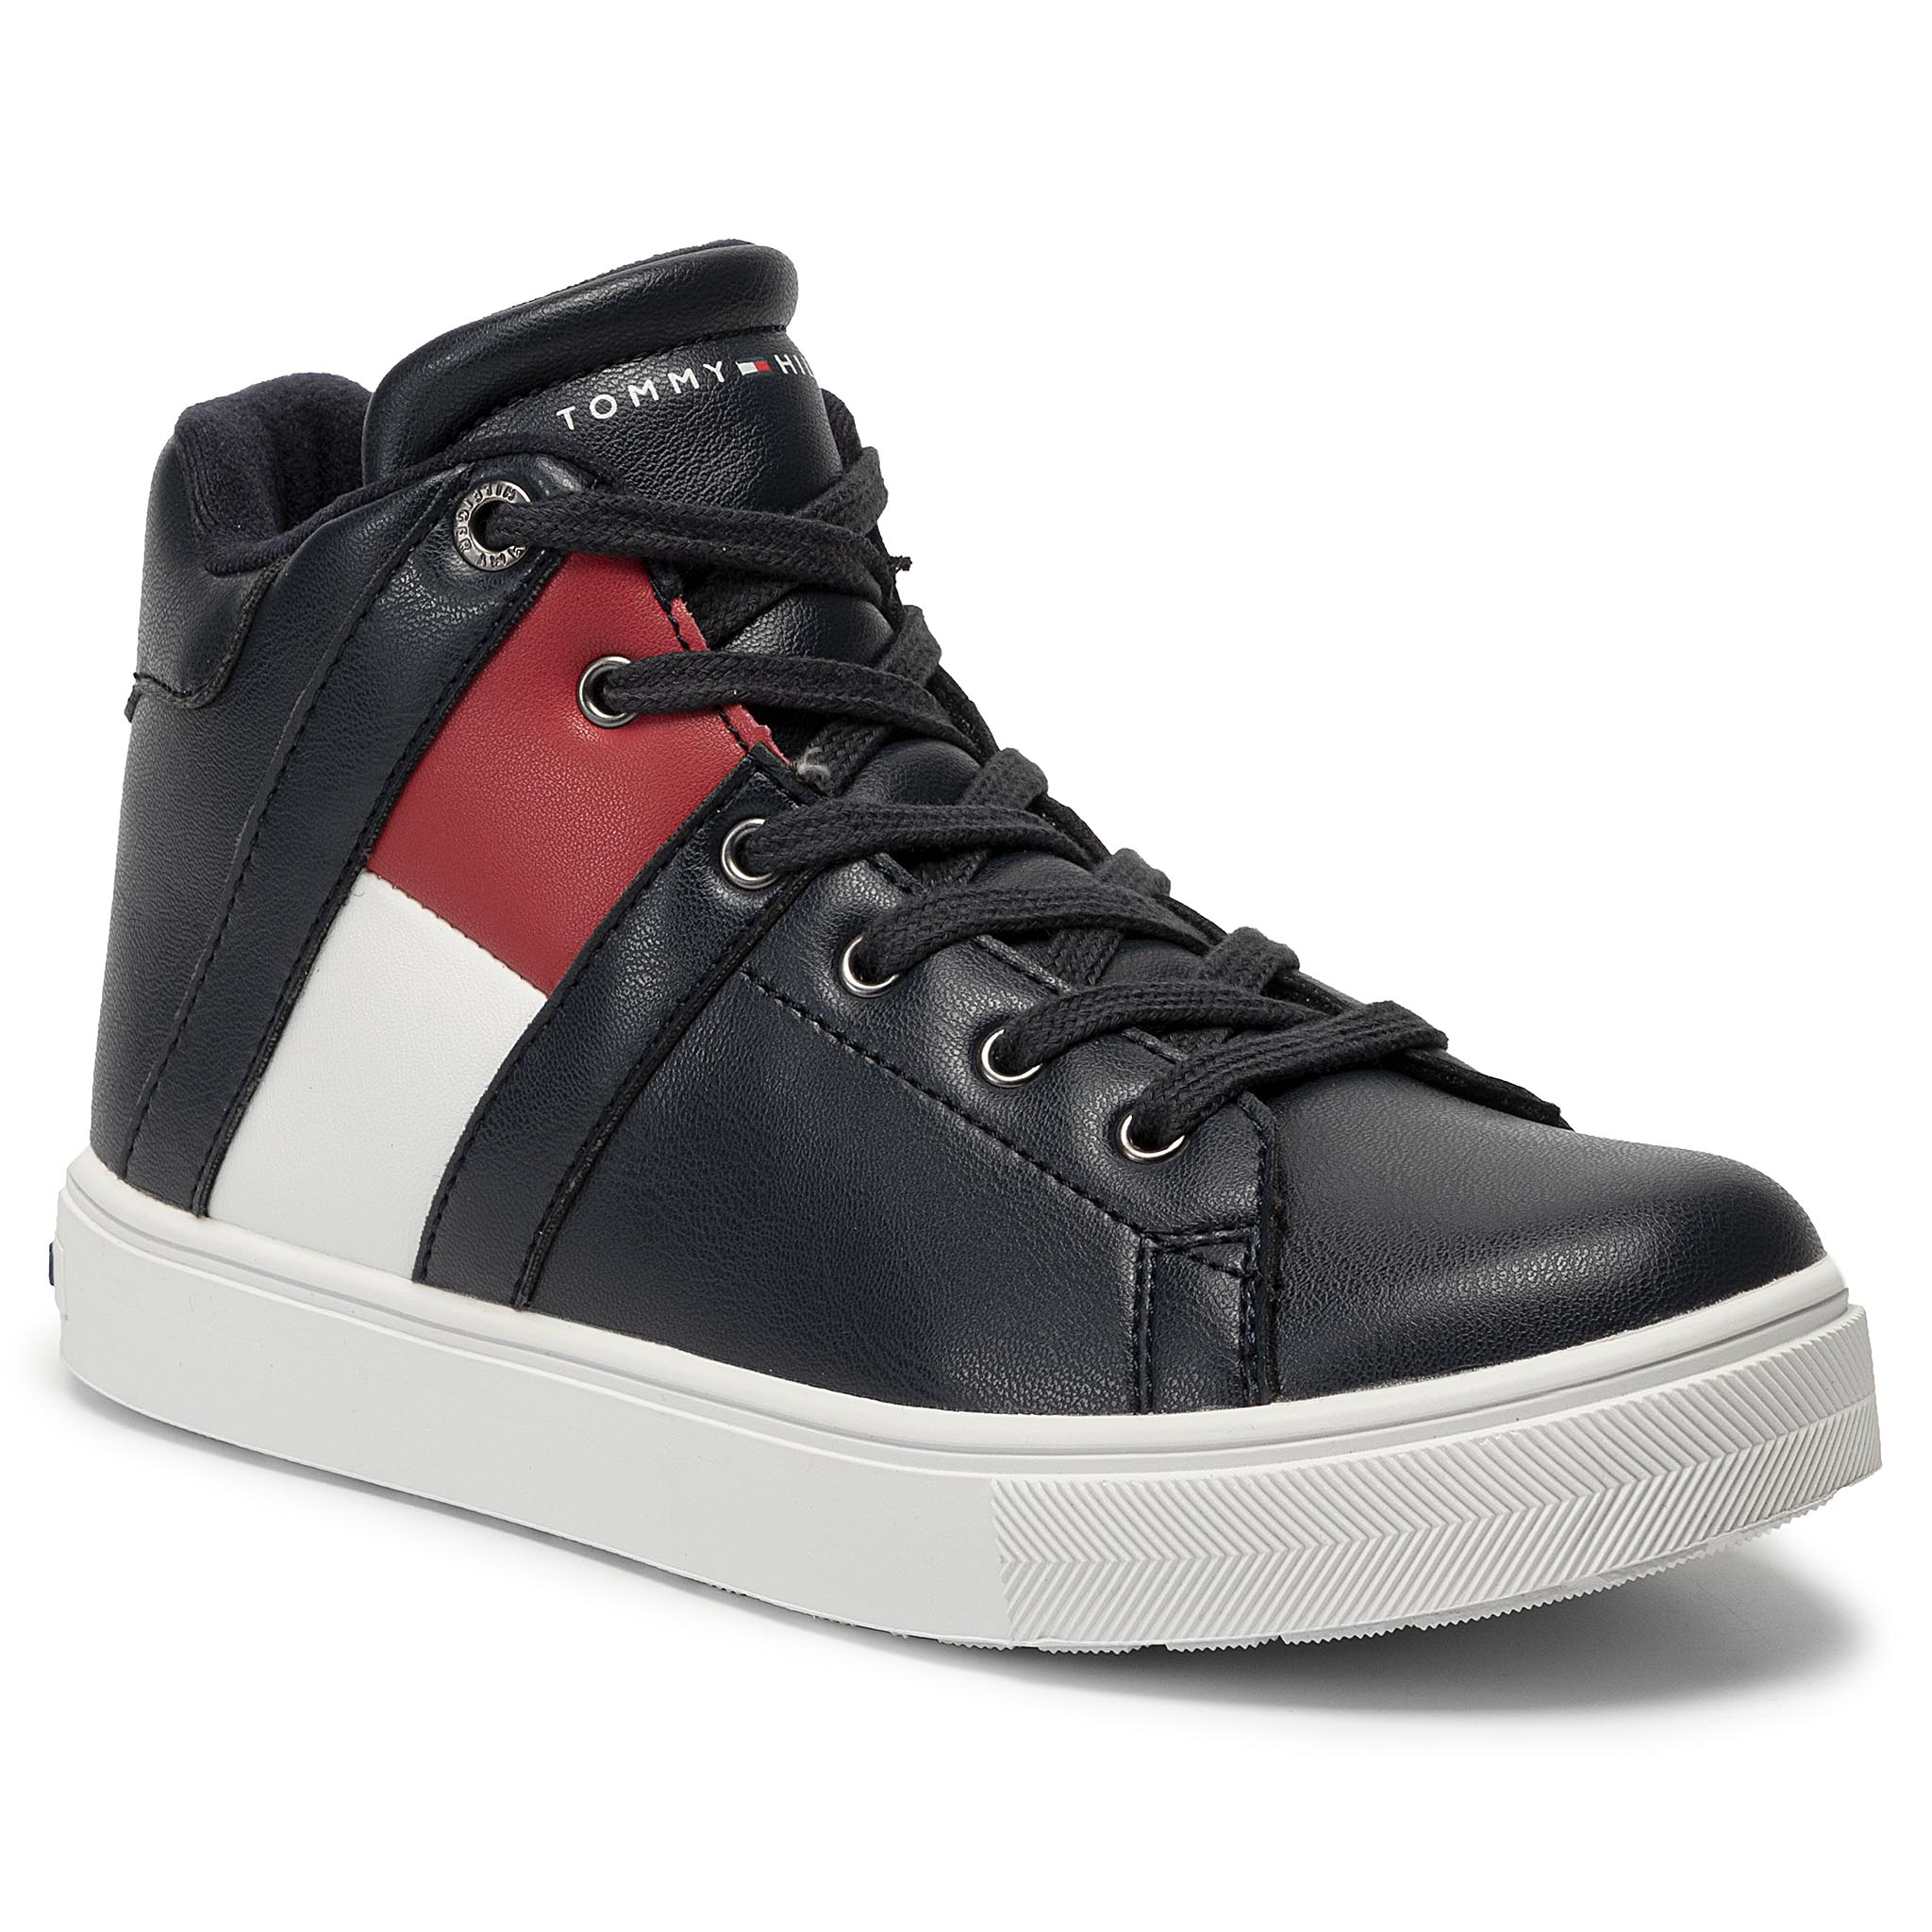 Sneakers TOMMY HILFIGER - High Top Lace-up Sneaker T3B4-30510-0739 D Blue 800